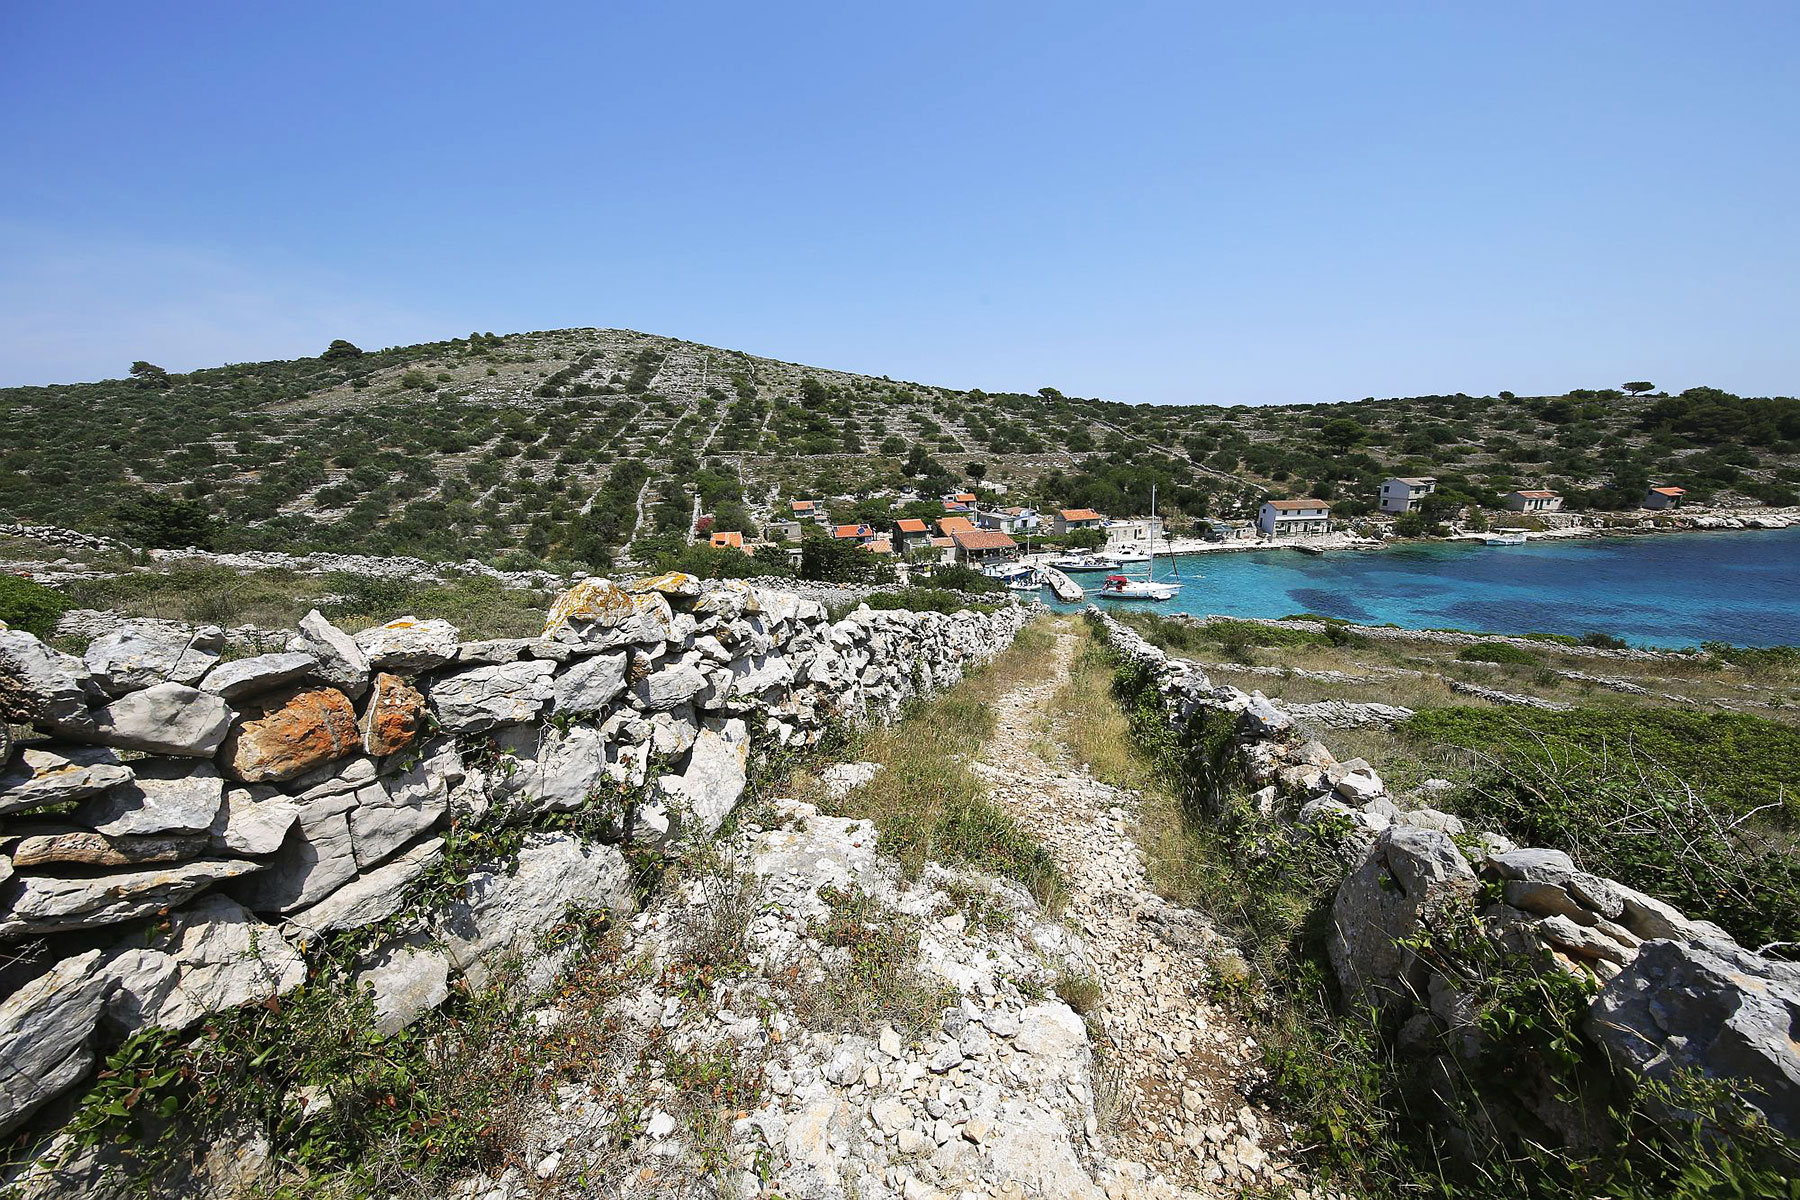 Archipelago Tours Photo of bay in Kornati with olive trees, stonewalls, small houses and boats in the clear blue sea